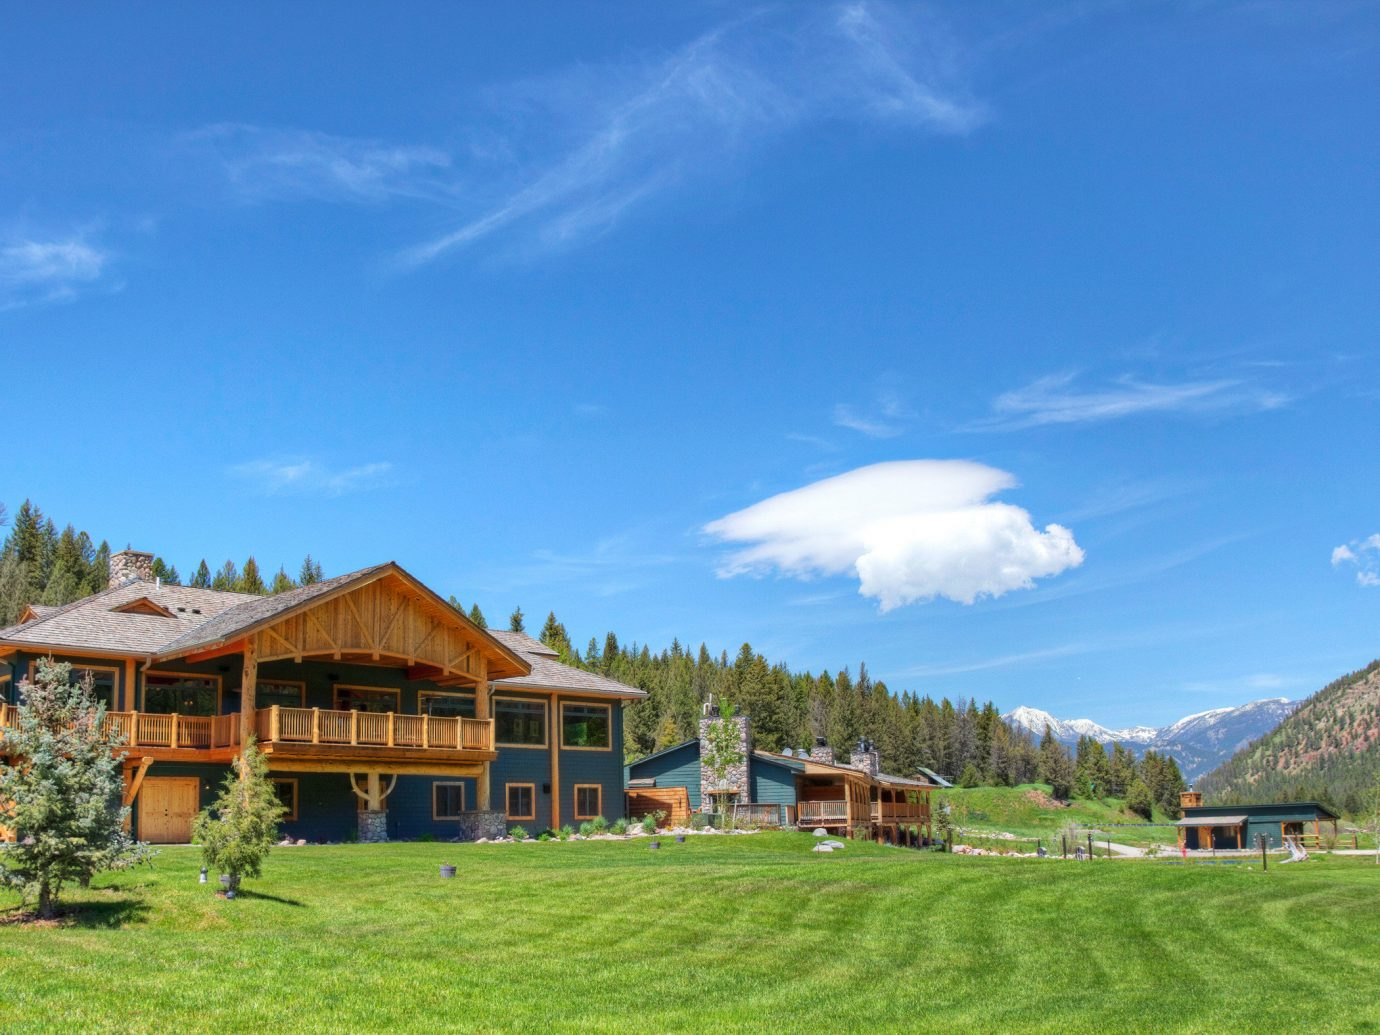 Country Exterior Glamping Grounds Hotels Lodge Montana Nature Outdoors Outdoors + Adventure Ranch Rustic Trip Ideas grass sky outdoor mountainous landforms house field mountain range mountain green estate rural area old landscape Resort valley meadow Village Farm plateau grassy lush hillside